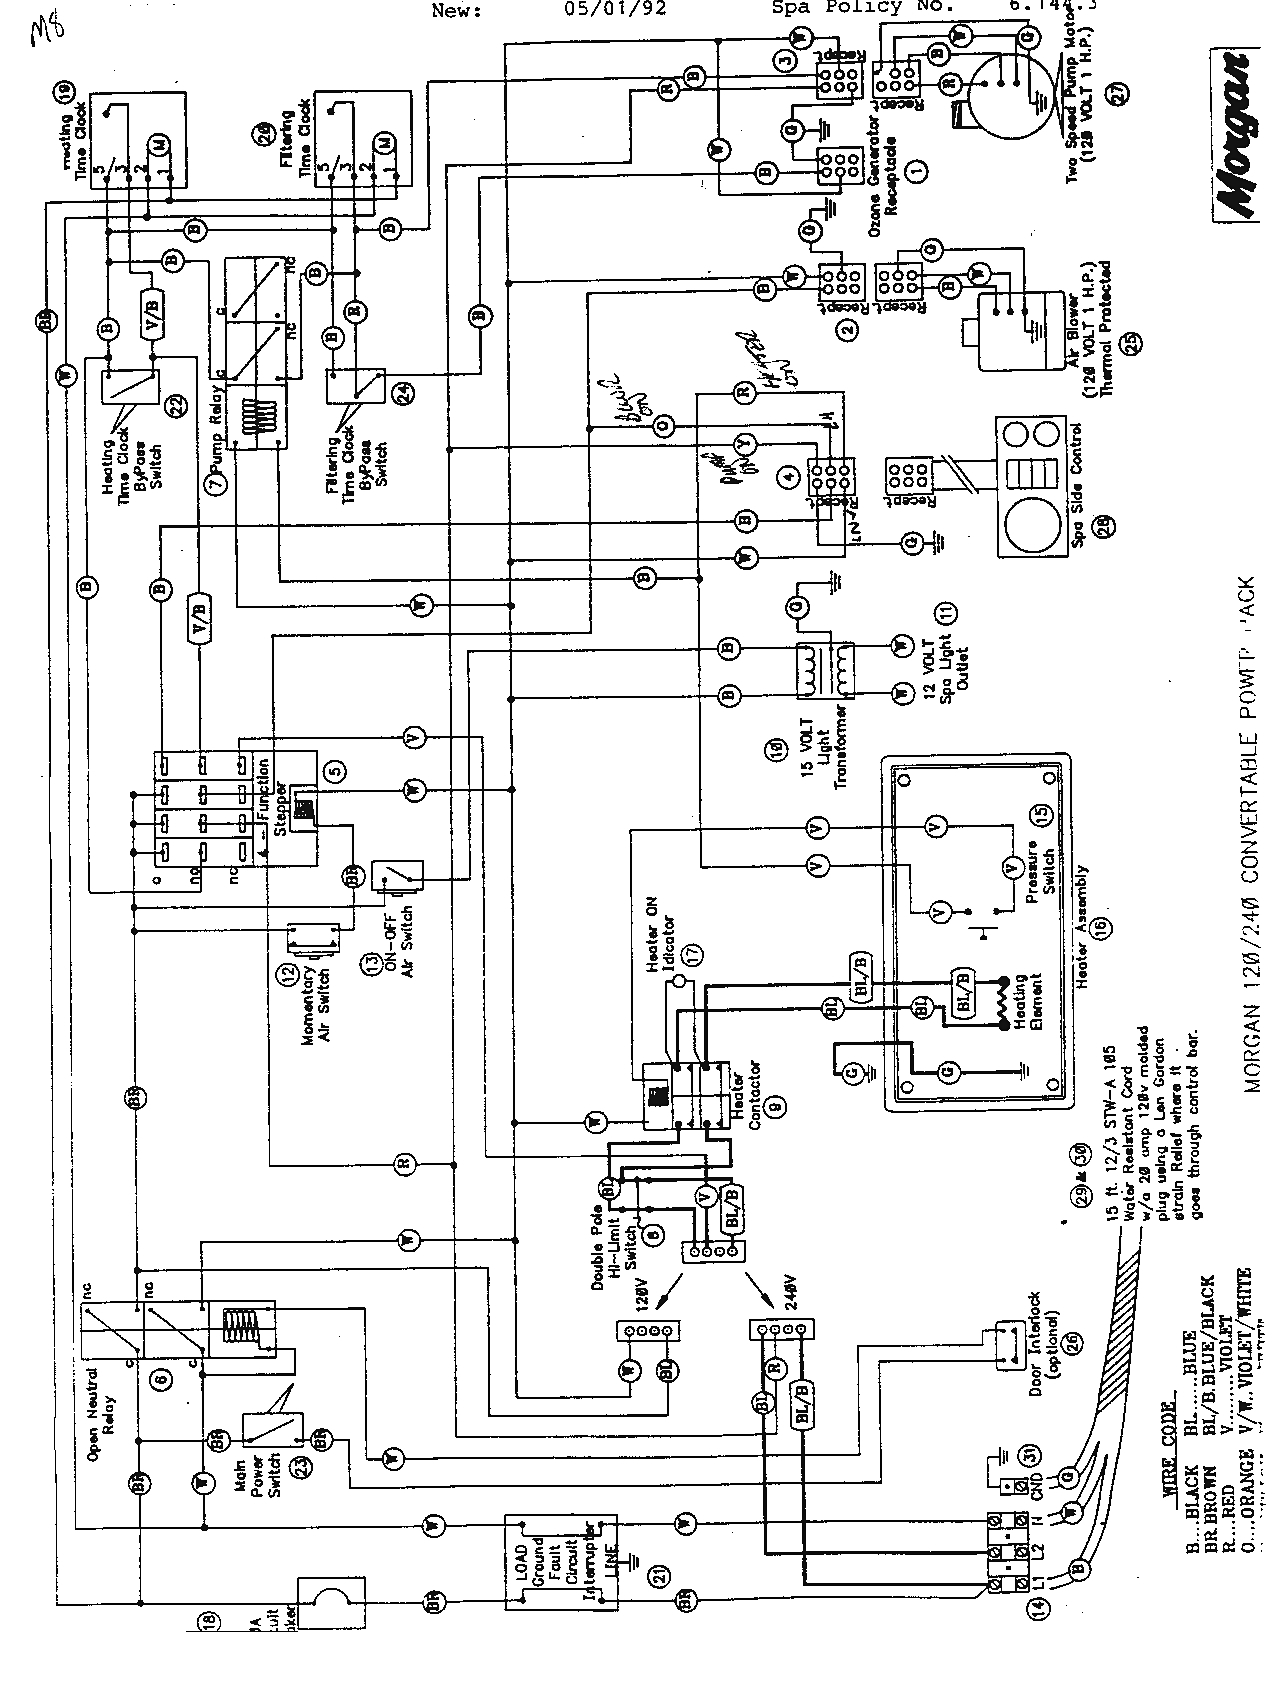 Hot Tub Wiring Diagram Collection